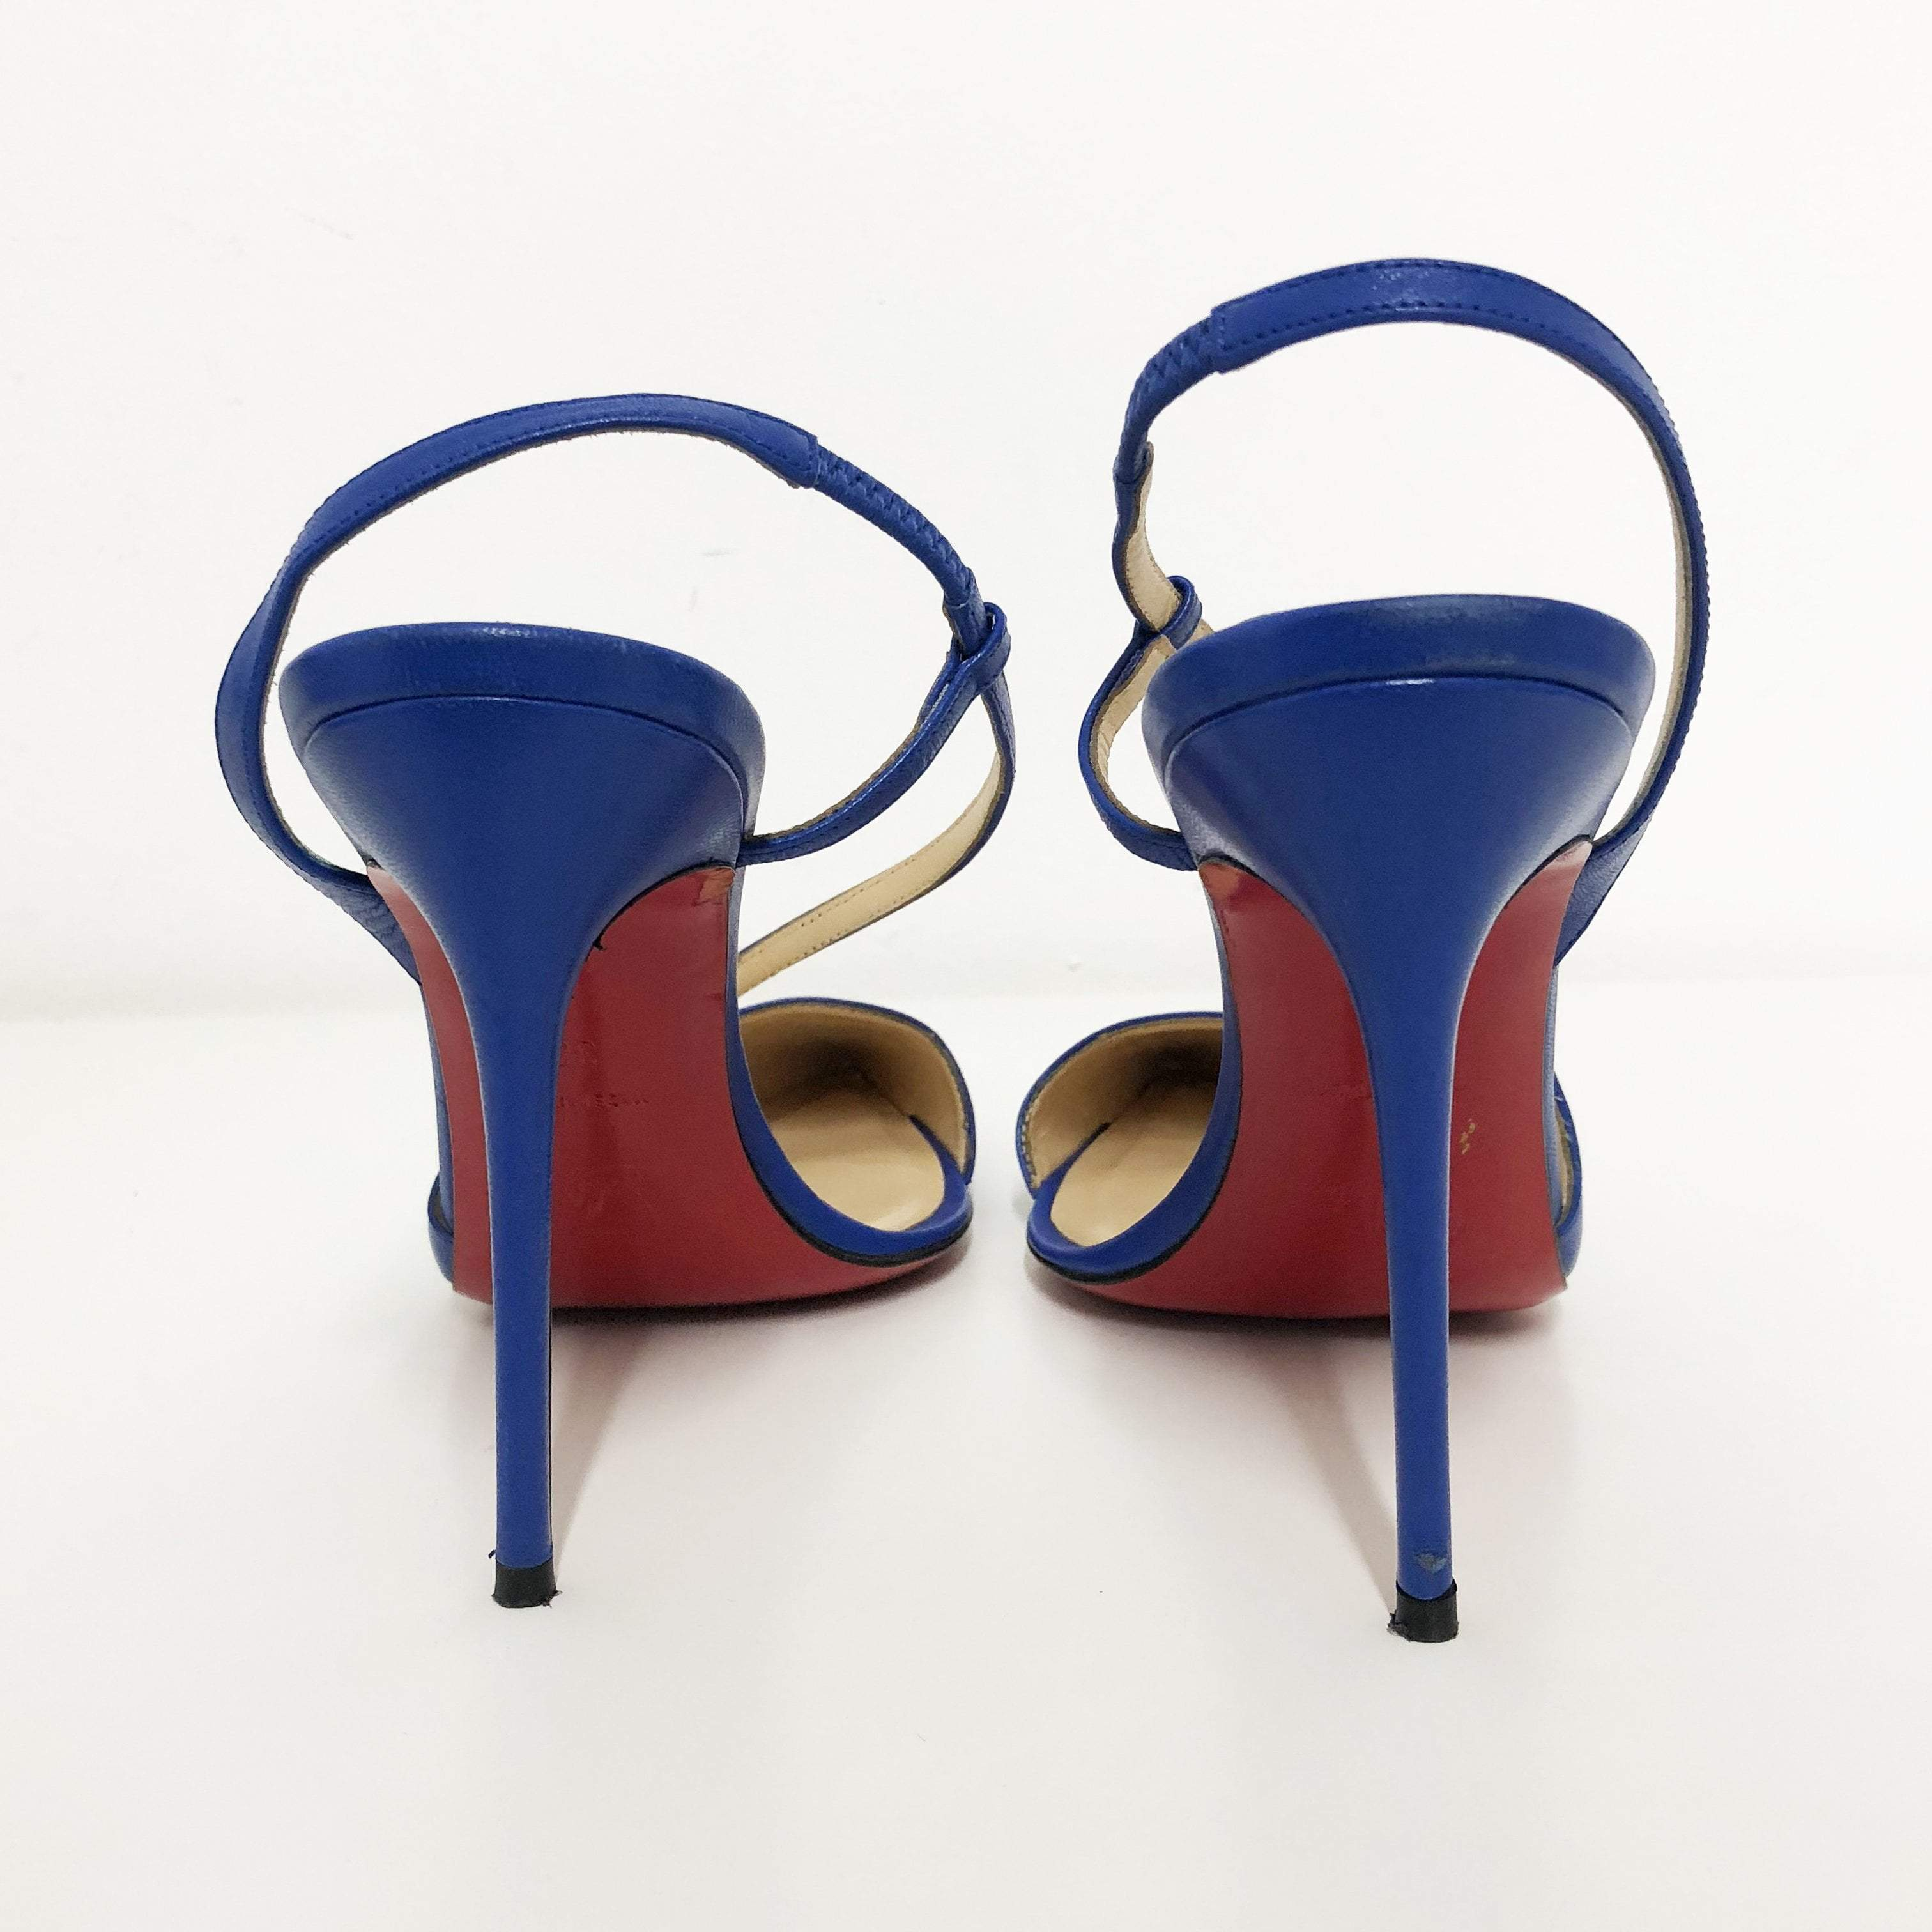 Christian Louboutin June 100 leather slingback pumps